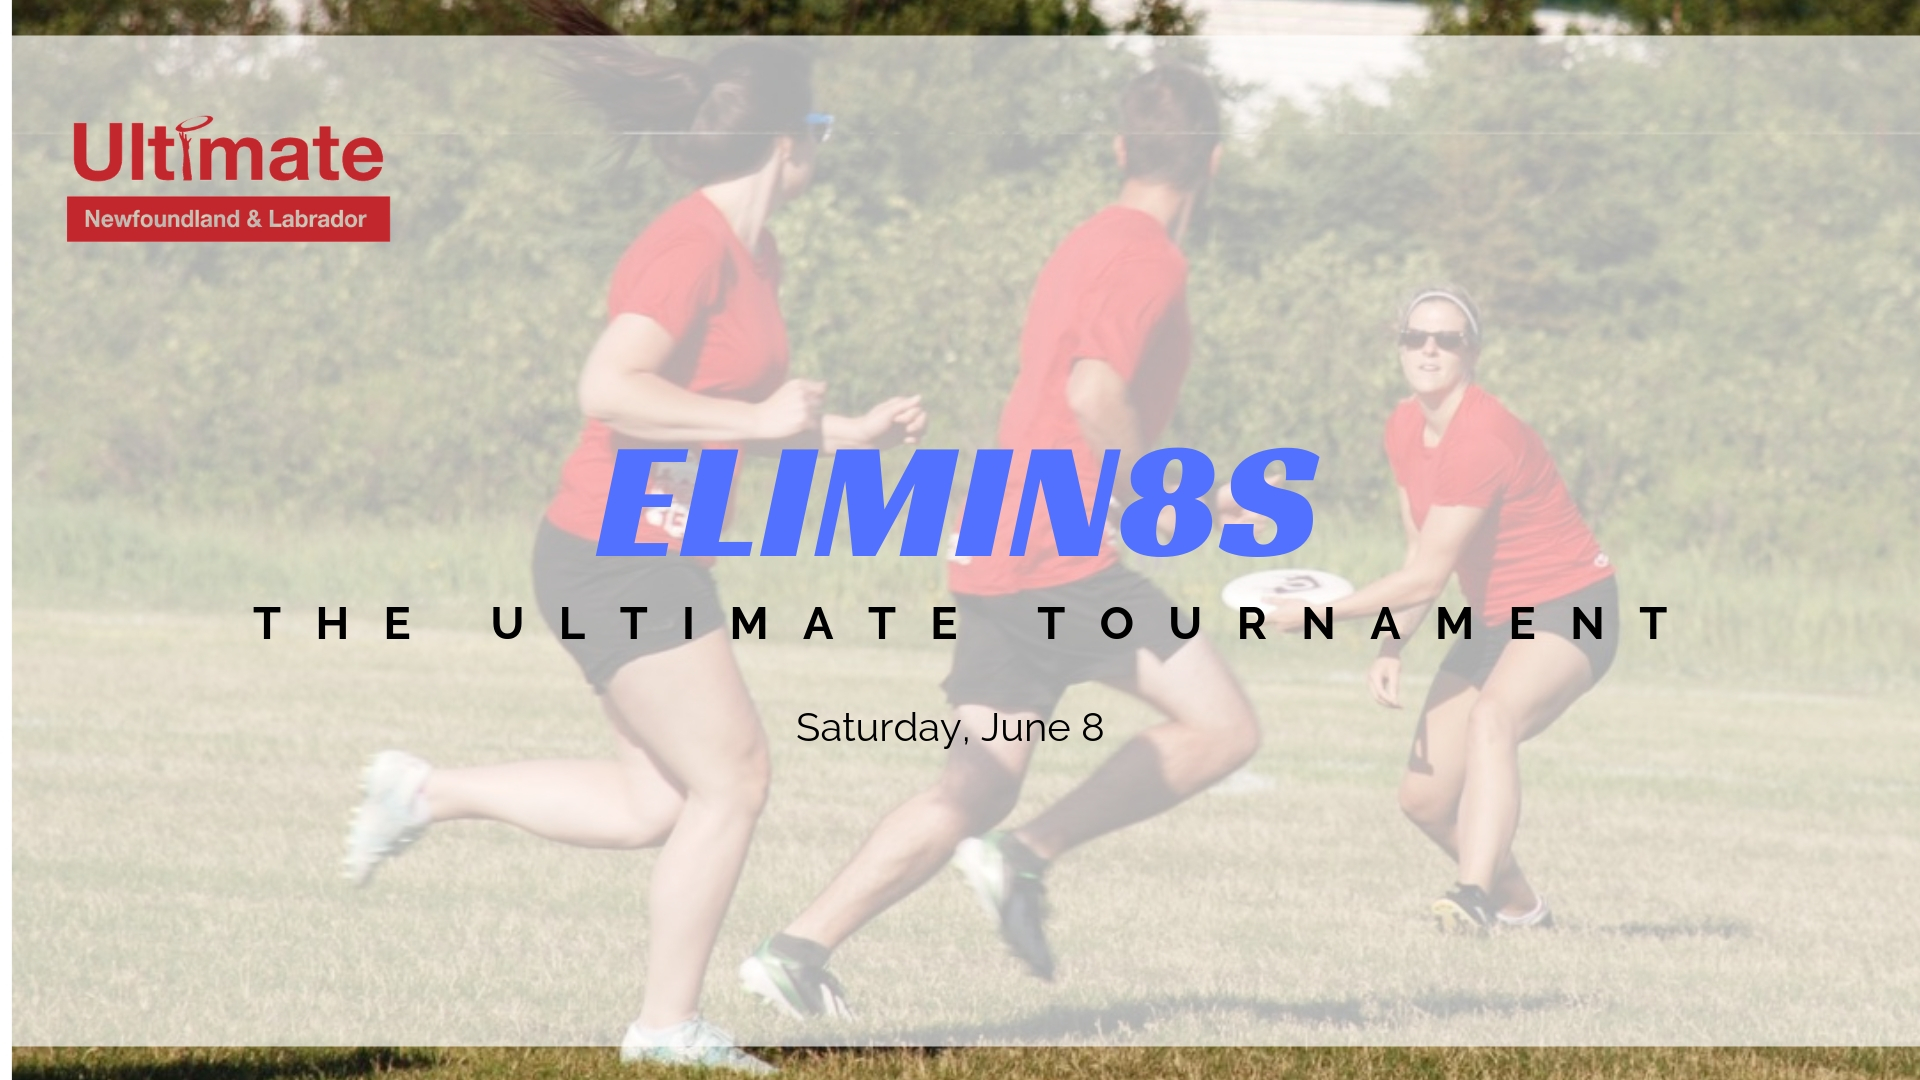 Ultimate NL's inaugural Elimin8s tournament will be held on Saturday, June 8.